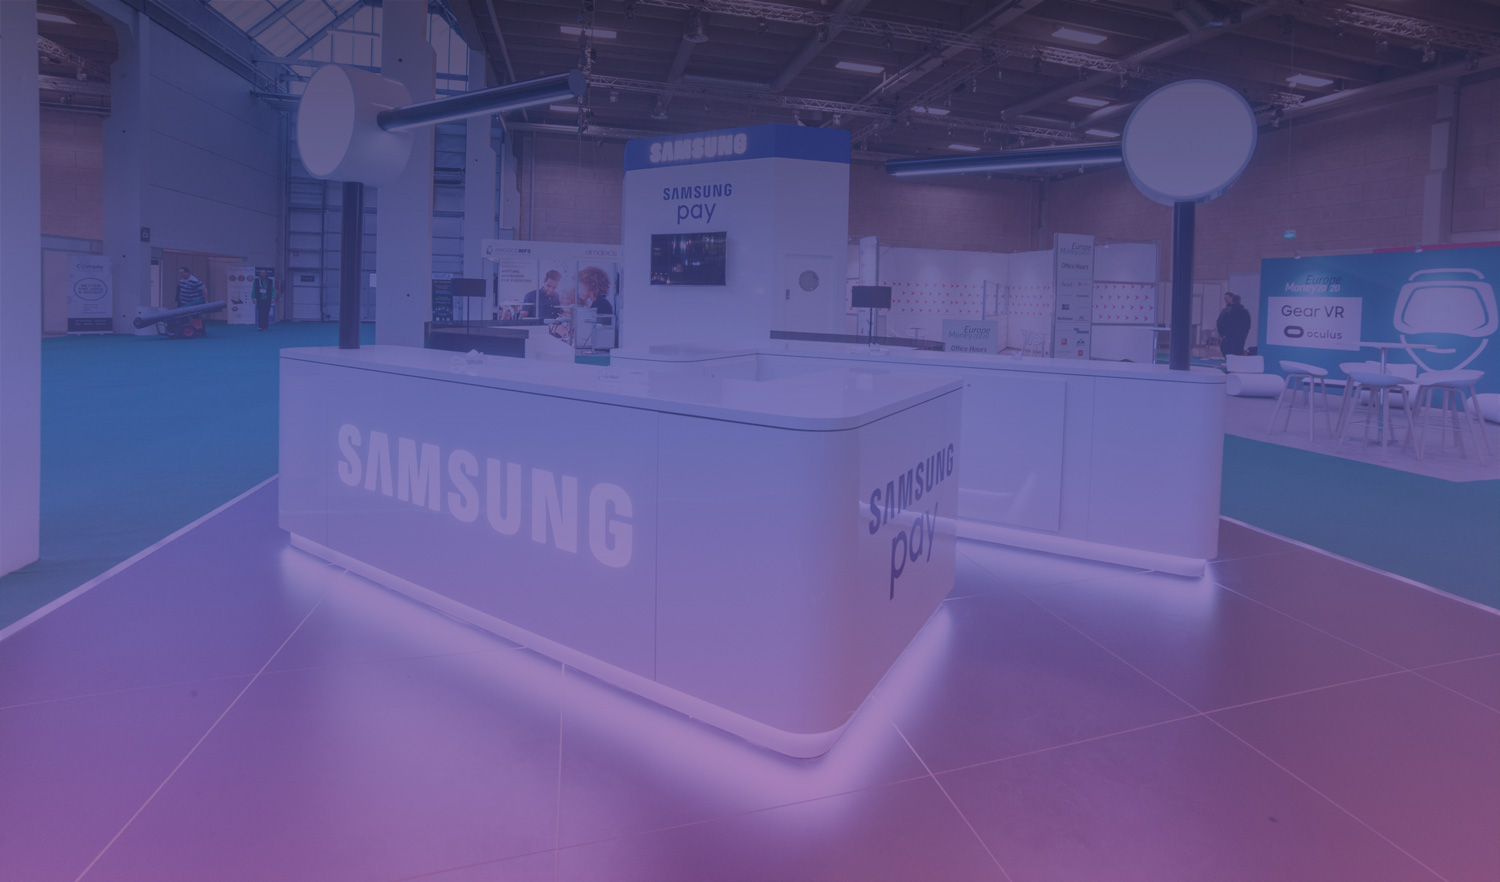 samsung-pay-custom-exhibits-ges-2018